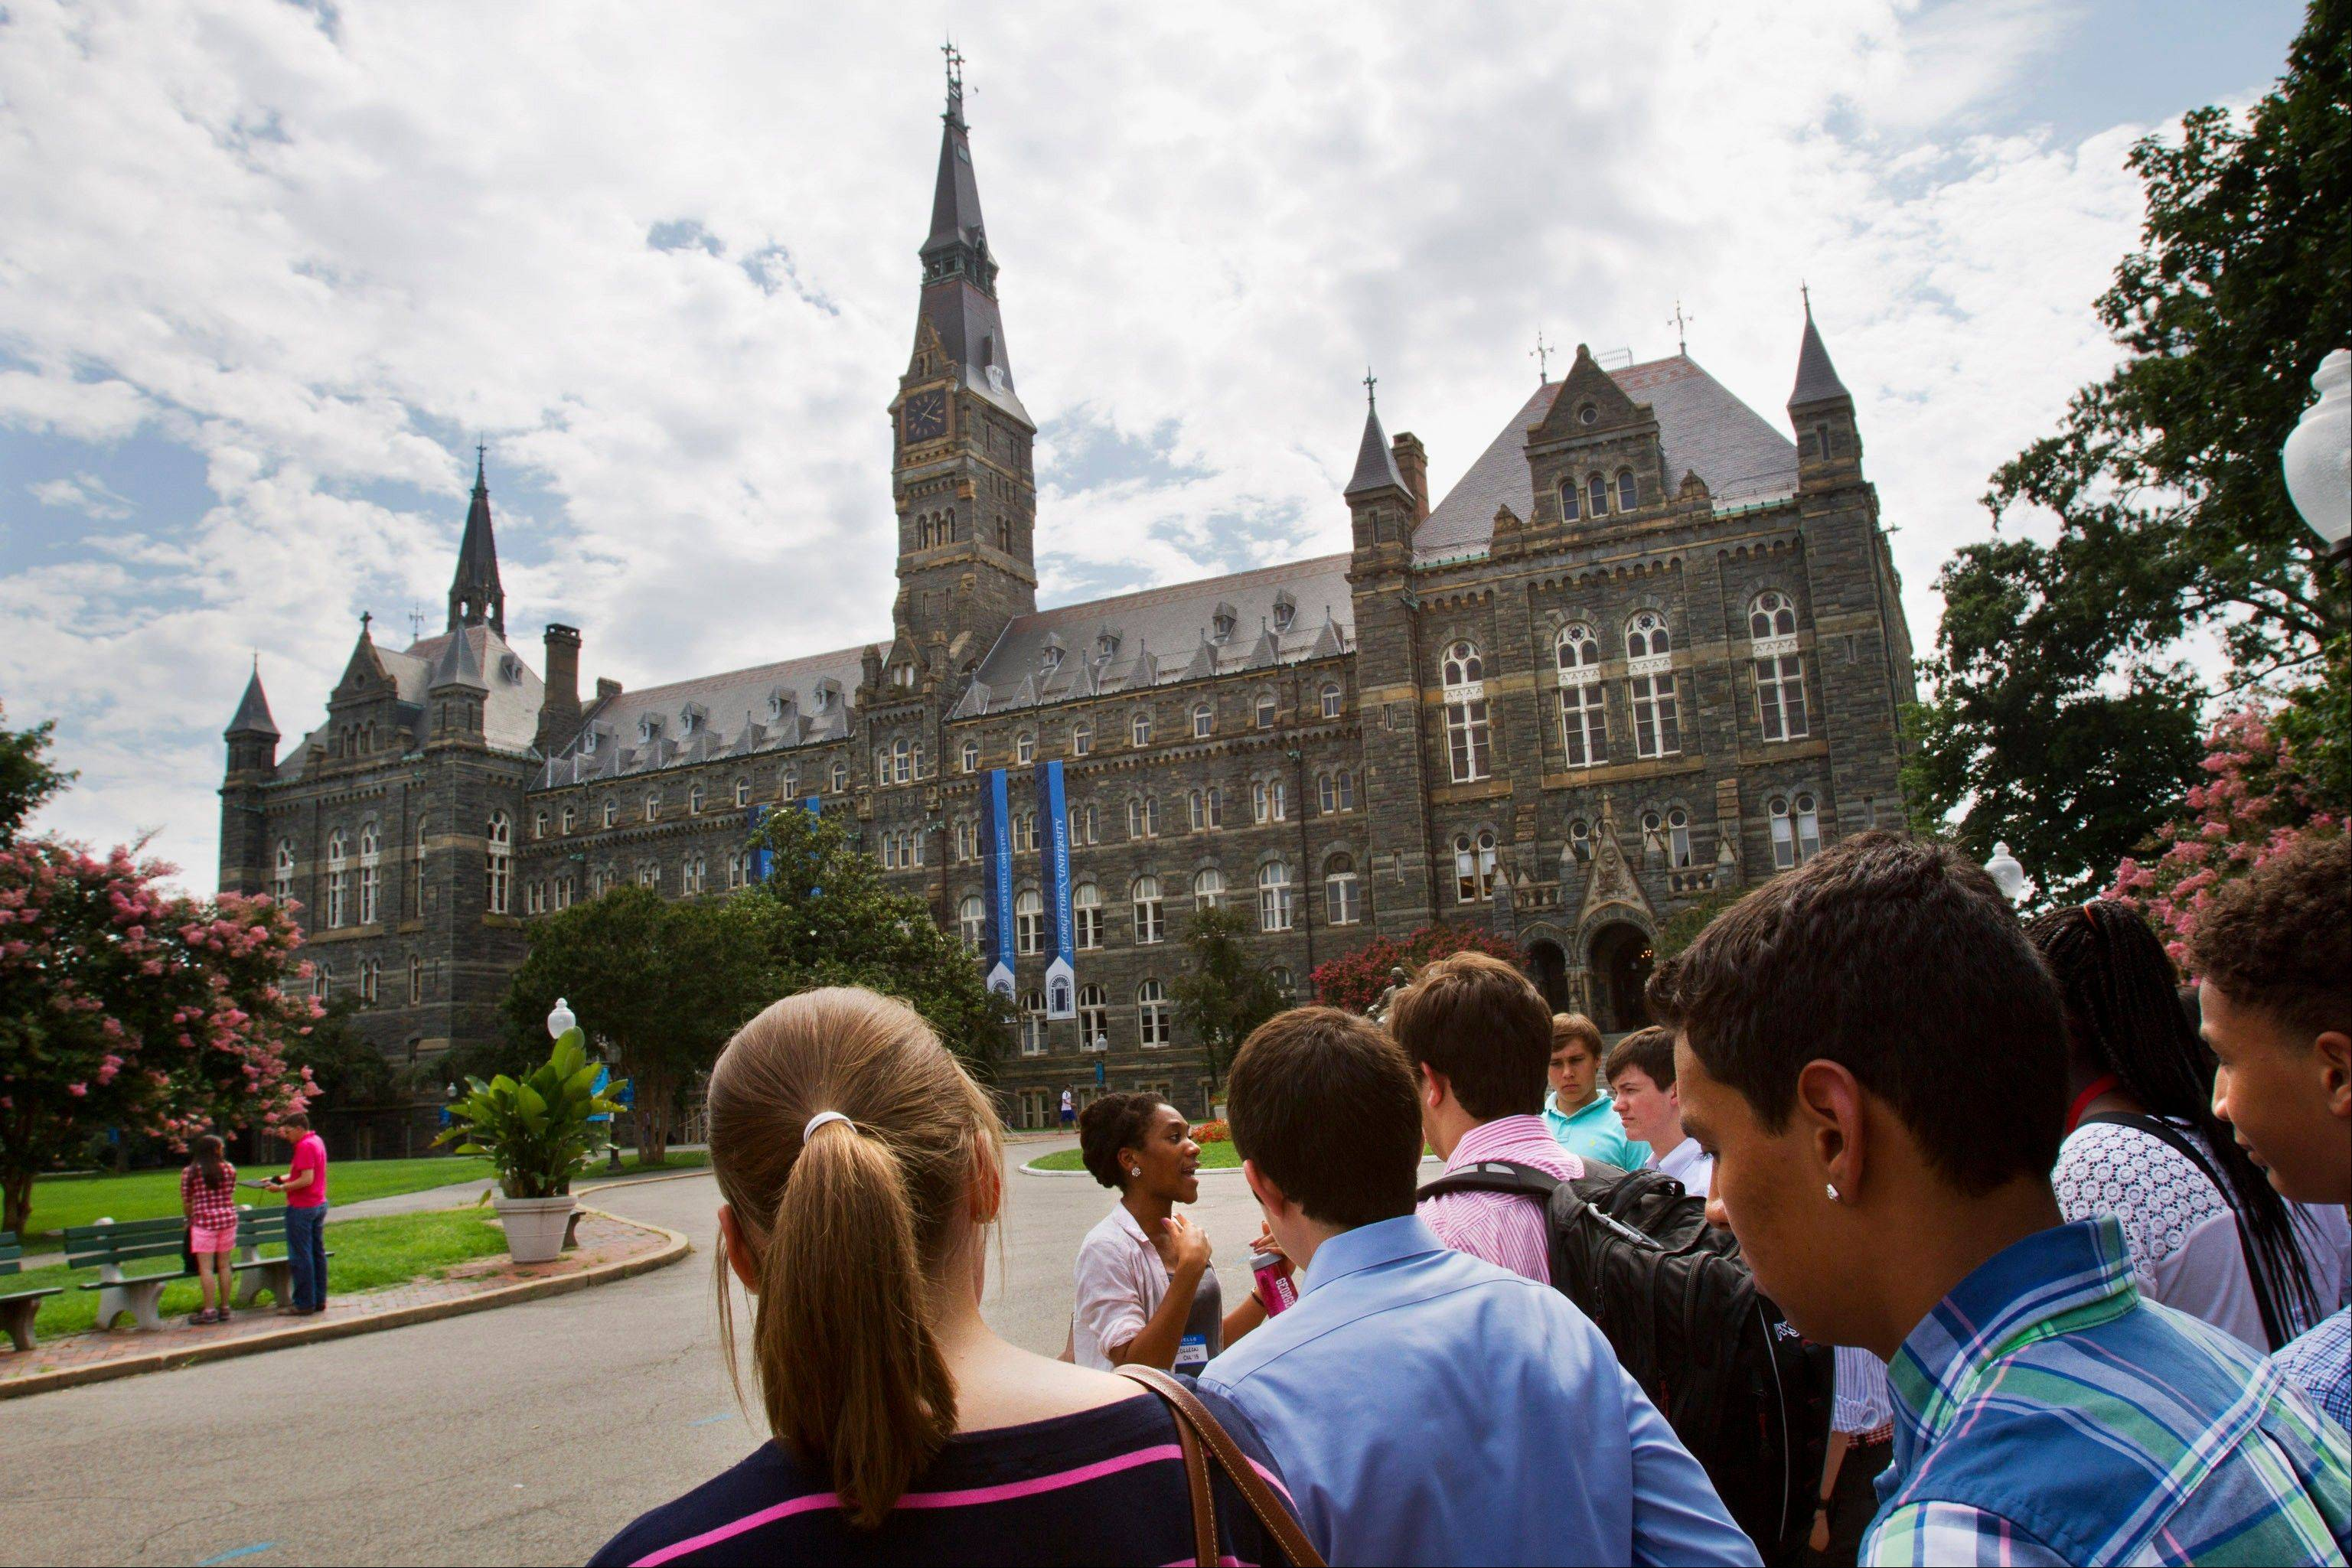 Prospective students tour Georgetown University�s campus in Washington, in this Wednesday, July 10, 2013, file photo. The Senate was weighing legislation Wednesday, July 24, 2013, that would link interest rates to the financial markets, providing lower rates for all college students this fall but perhaps resulting in higher rates in the years ahead.